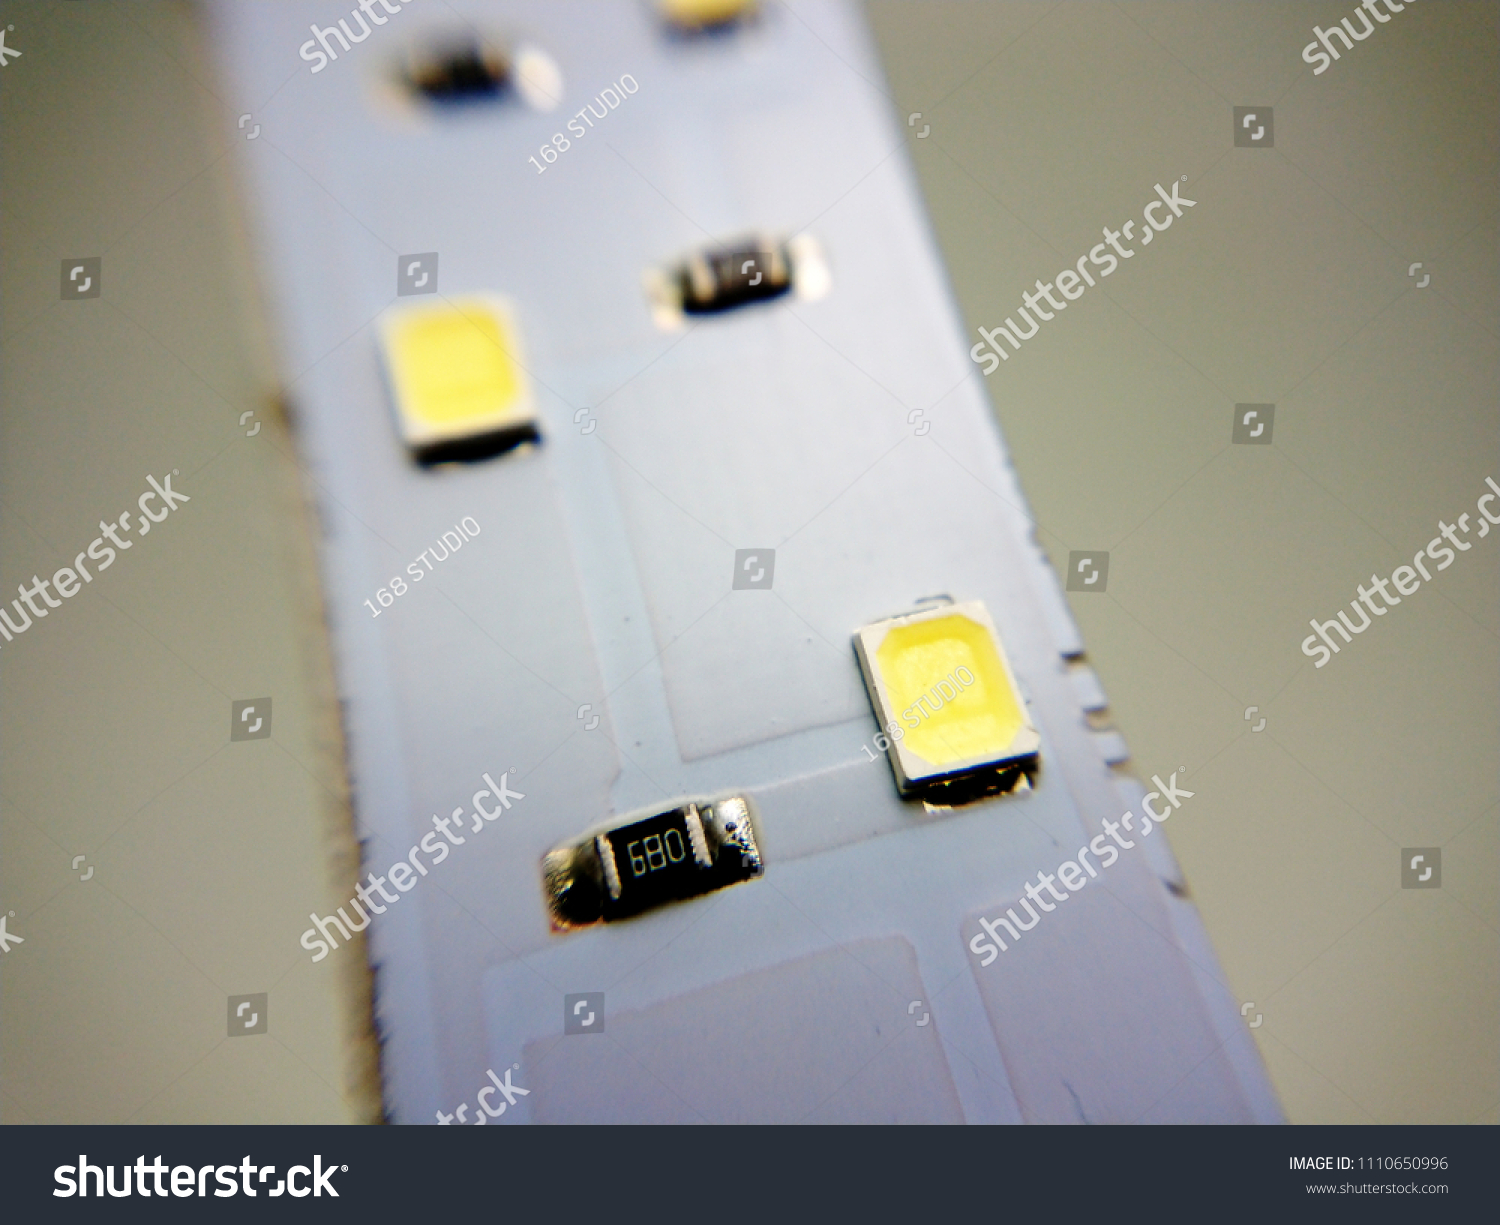 Close Pcb Board Led Smd Lamp Stock Photo Edit Now 1110650996 Containing Electronic Components The Circuit Is Printed On Its Surface Up With White Background Light Emitting Diode